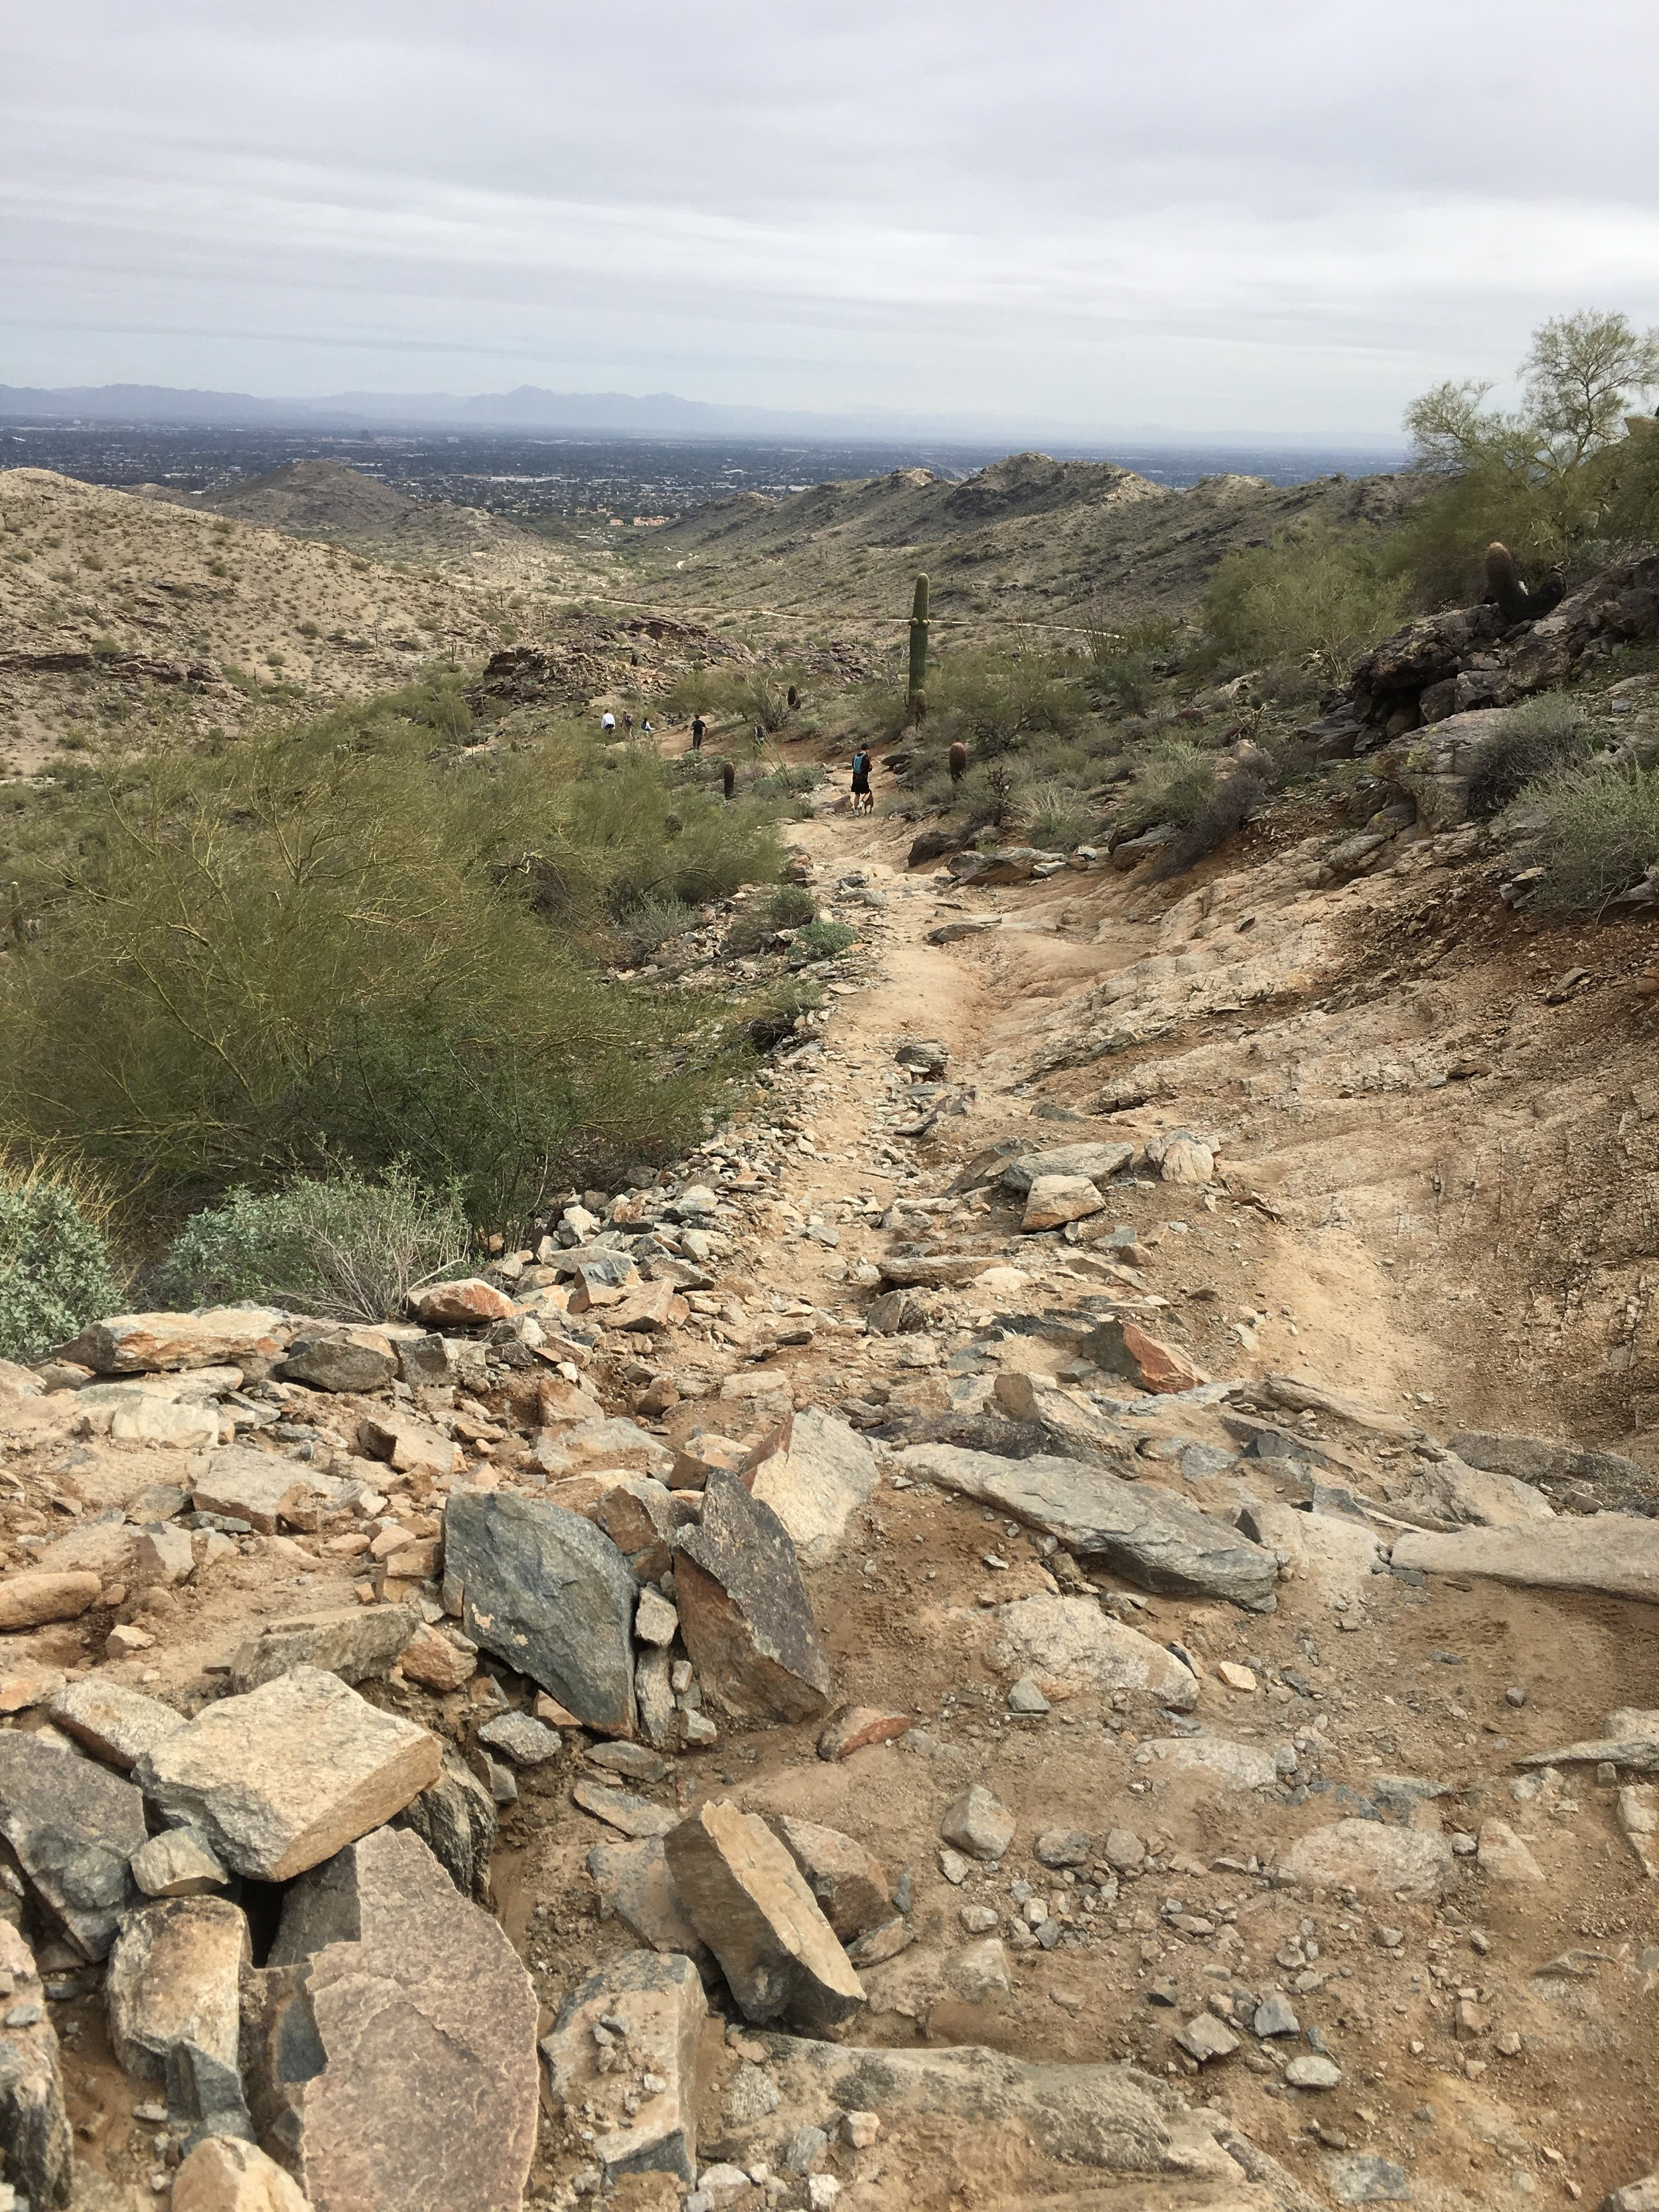 The trail is pretty rocky, which adds to the fun of it. There's uphill and downhill portions, but it really isn't THAT bad.